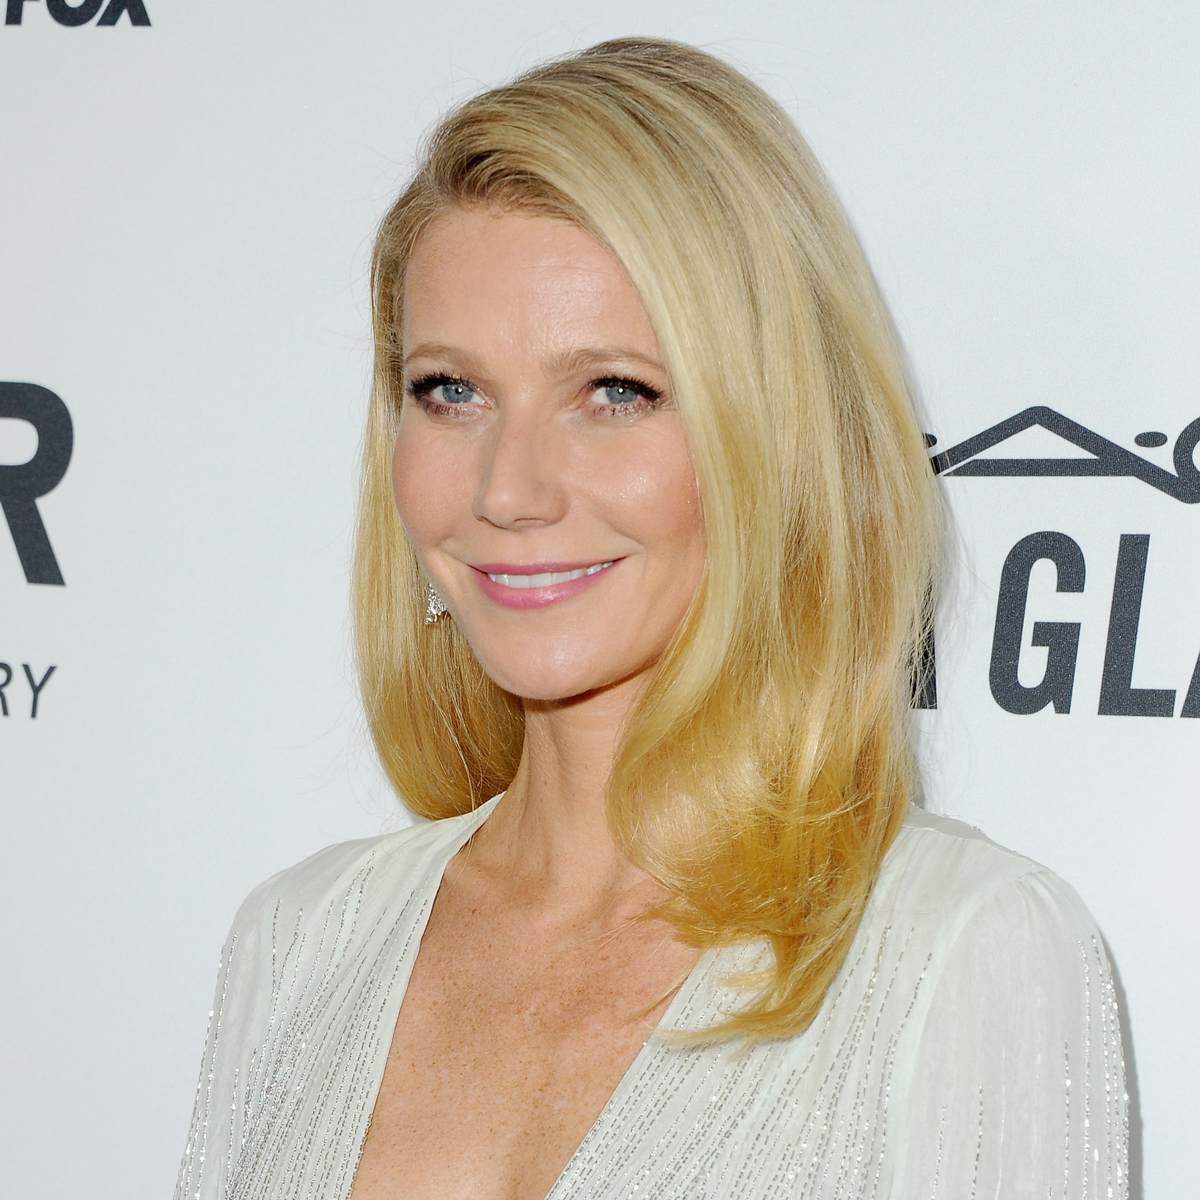 Gwyneth Paltrow is Not Into Dill